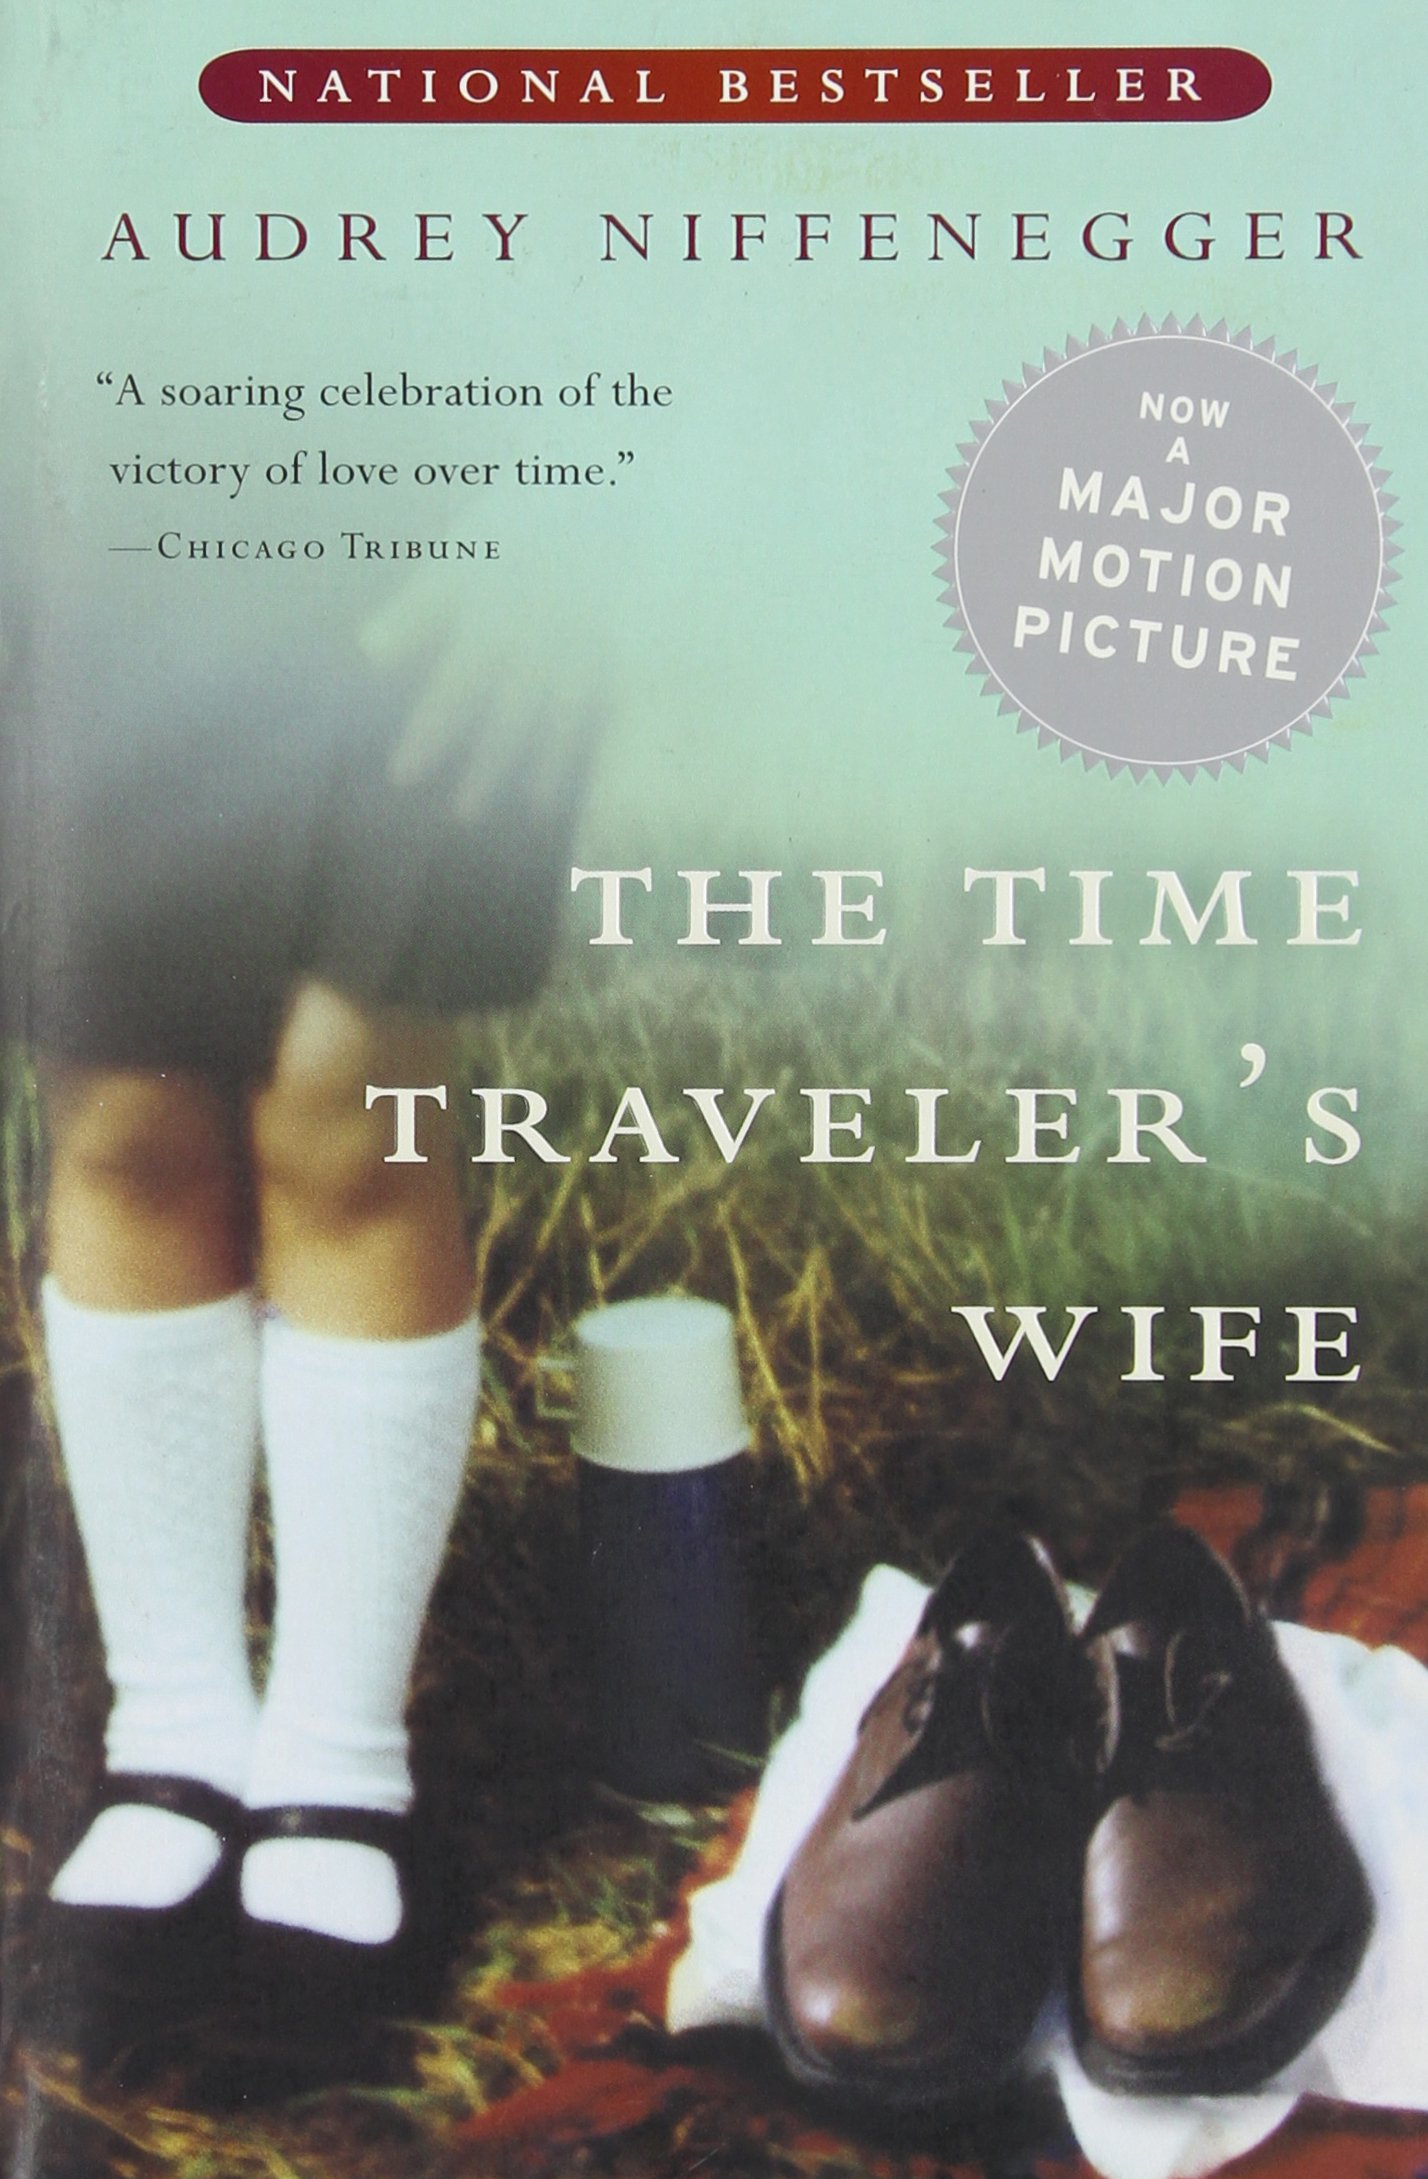 The Time Traveler's Wifeby Audrey Niffenegger - I read The Time Traveler's Wife when I was in college and it TOTALLY captured me. At the time, I wasn't reading a ton of books outside of what I was assigned in school, and I have such vivid memories of tearing through this one and being reminded of just how much I love fiction. It's been long enough now that I can't say I remember all the details of the plot, but it remains close to my heart and is absolutely among my favorite love stories. (For what it's worth, I did not dig the movie adaptation. Such a bummer.)